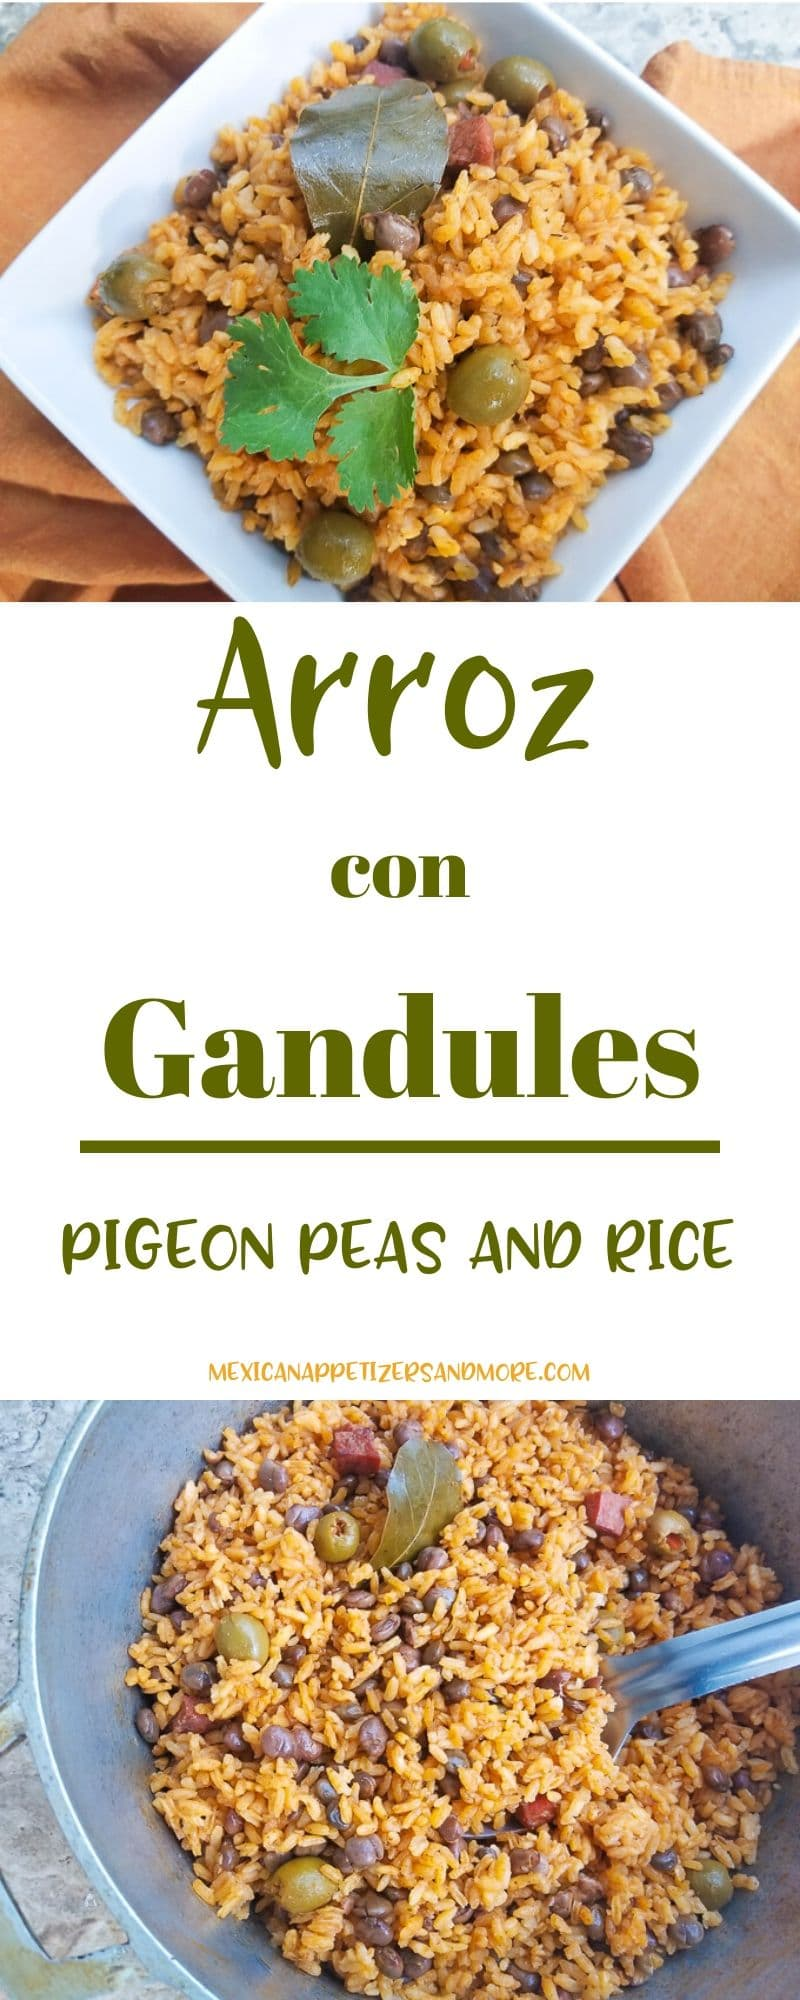 Arroz con Gandules (Pigeon Peas and Rice) is the quintessential rice of Puerto Rico. Always served for the holidays and never absent from the table. #arrozcongandules #pigeonpeasandrice) #puertoricanchristmasdishes #puertoricanchristmasricedishes #puertoricanricedishes #ricedishes #christmasricedishes#pigeonpeasandricepuertorico #pigeonpeasandricecaribbean #pigeonpeasrecipe #pigeonpeas